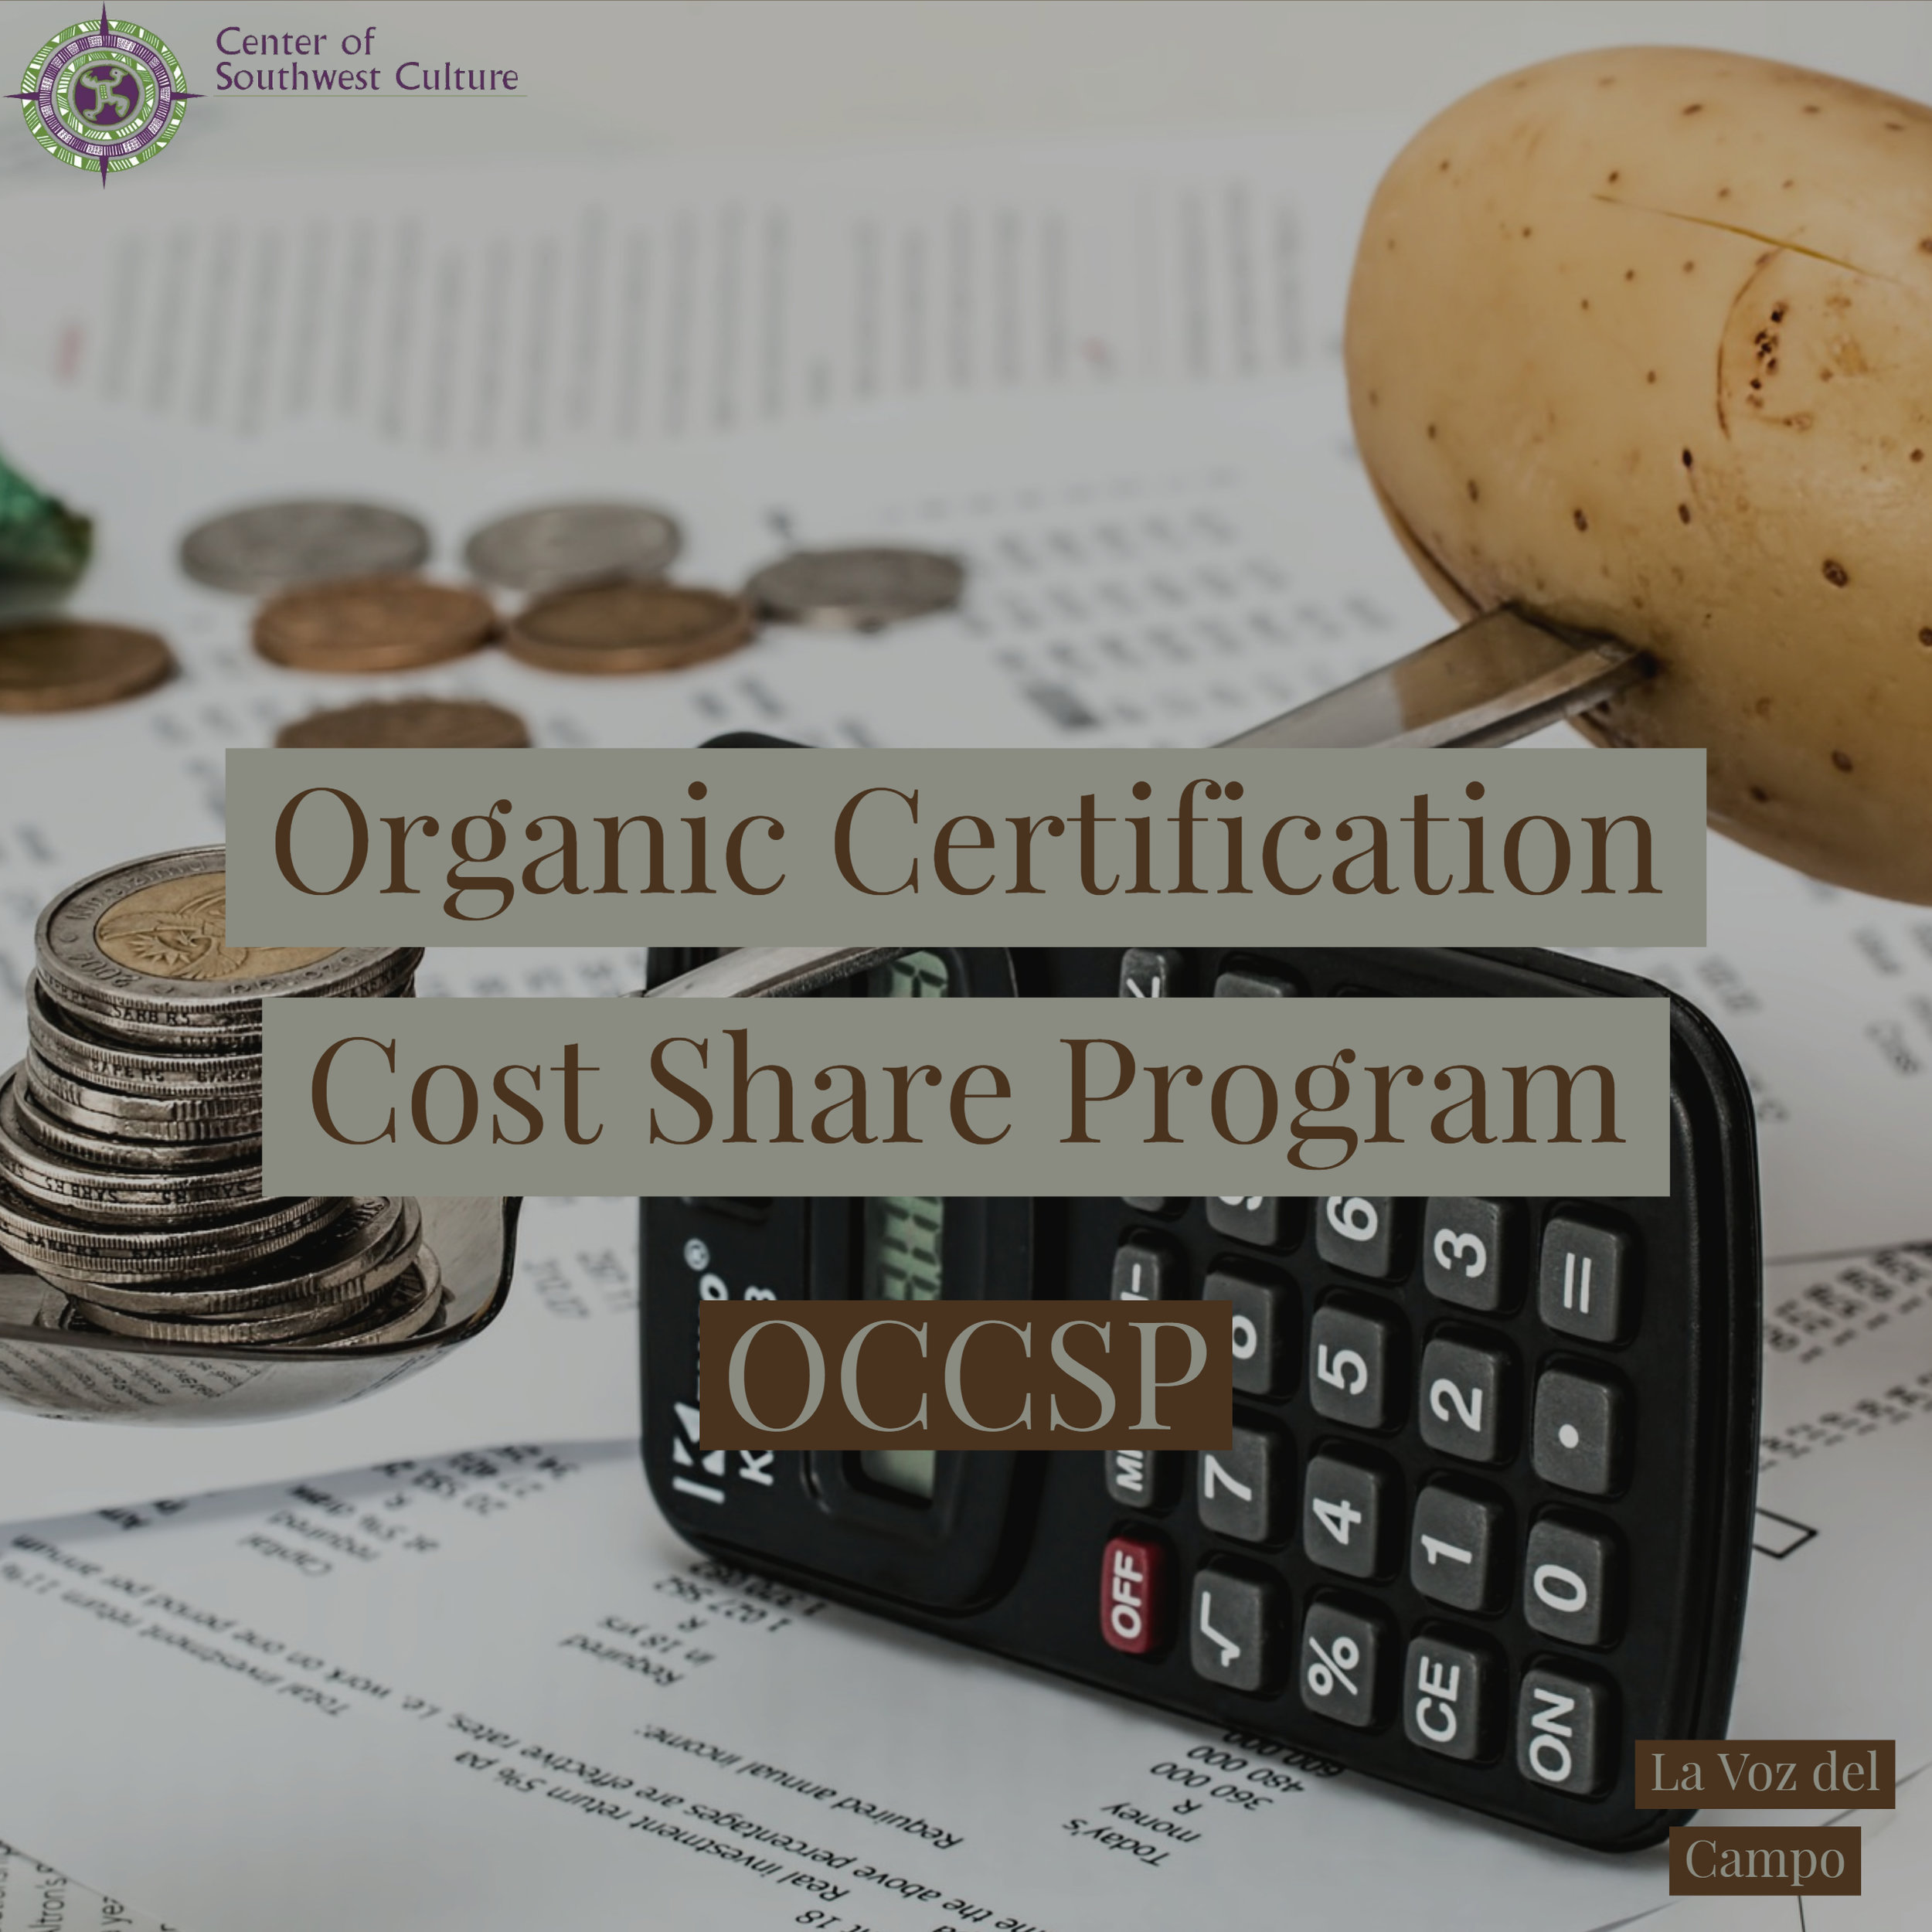 Organic Certification Cost Share Program - The program reimburses producers and handlers for a portion of their paid certification costs. Once certified, organic producers and handlers are eligible to receive reimbursement for up to 75 percent of certification costs each year, up to maximum of $750 per certification scope- crops, livestock, wild crops, handling and NM State Organic Program fees. PDF information can be found here.